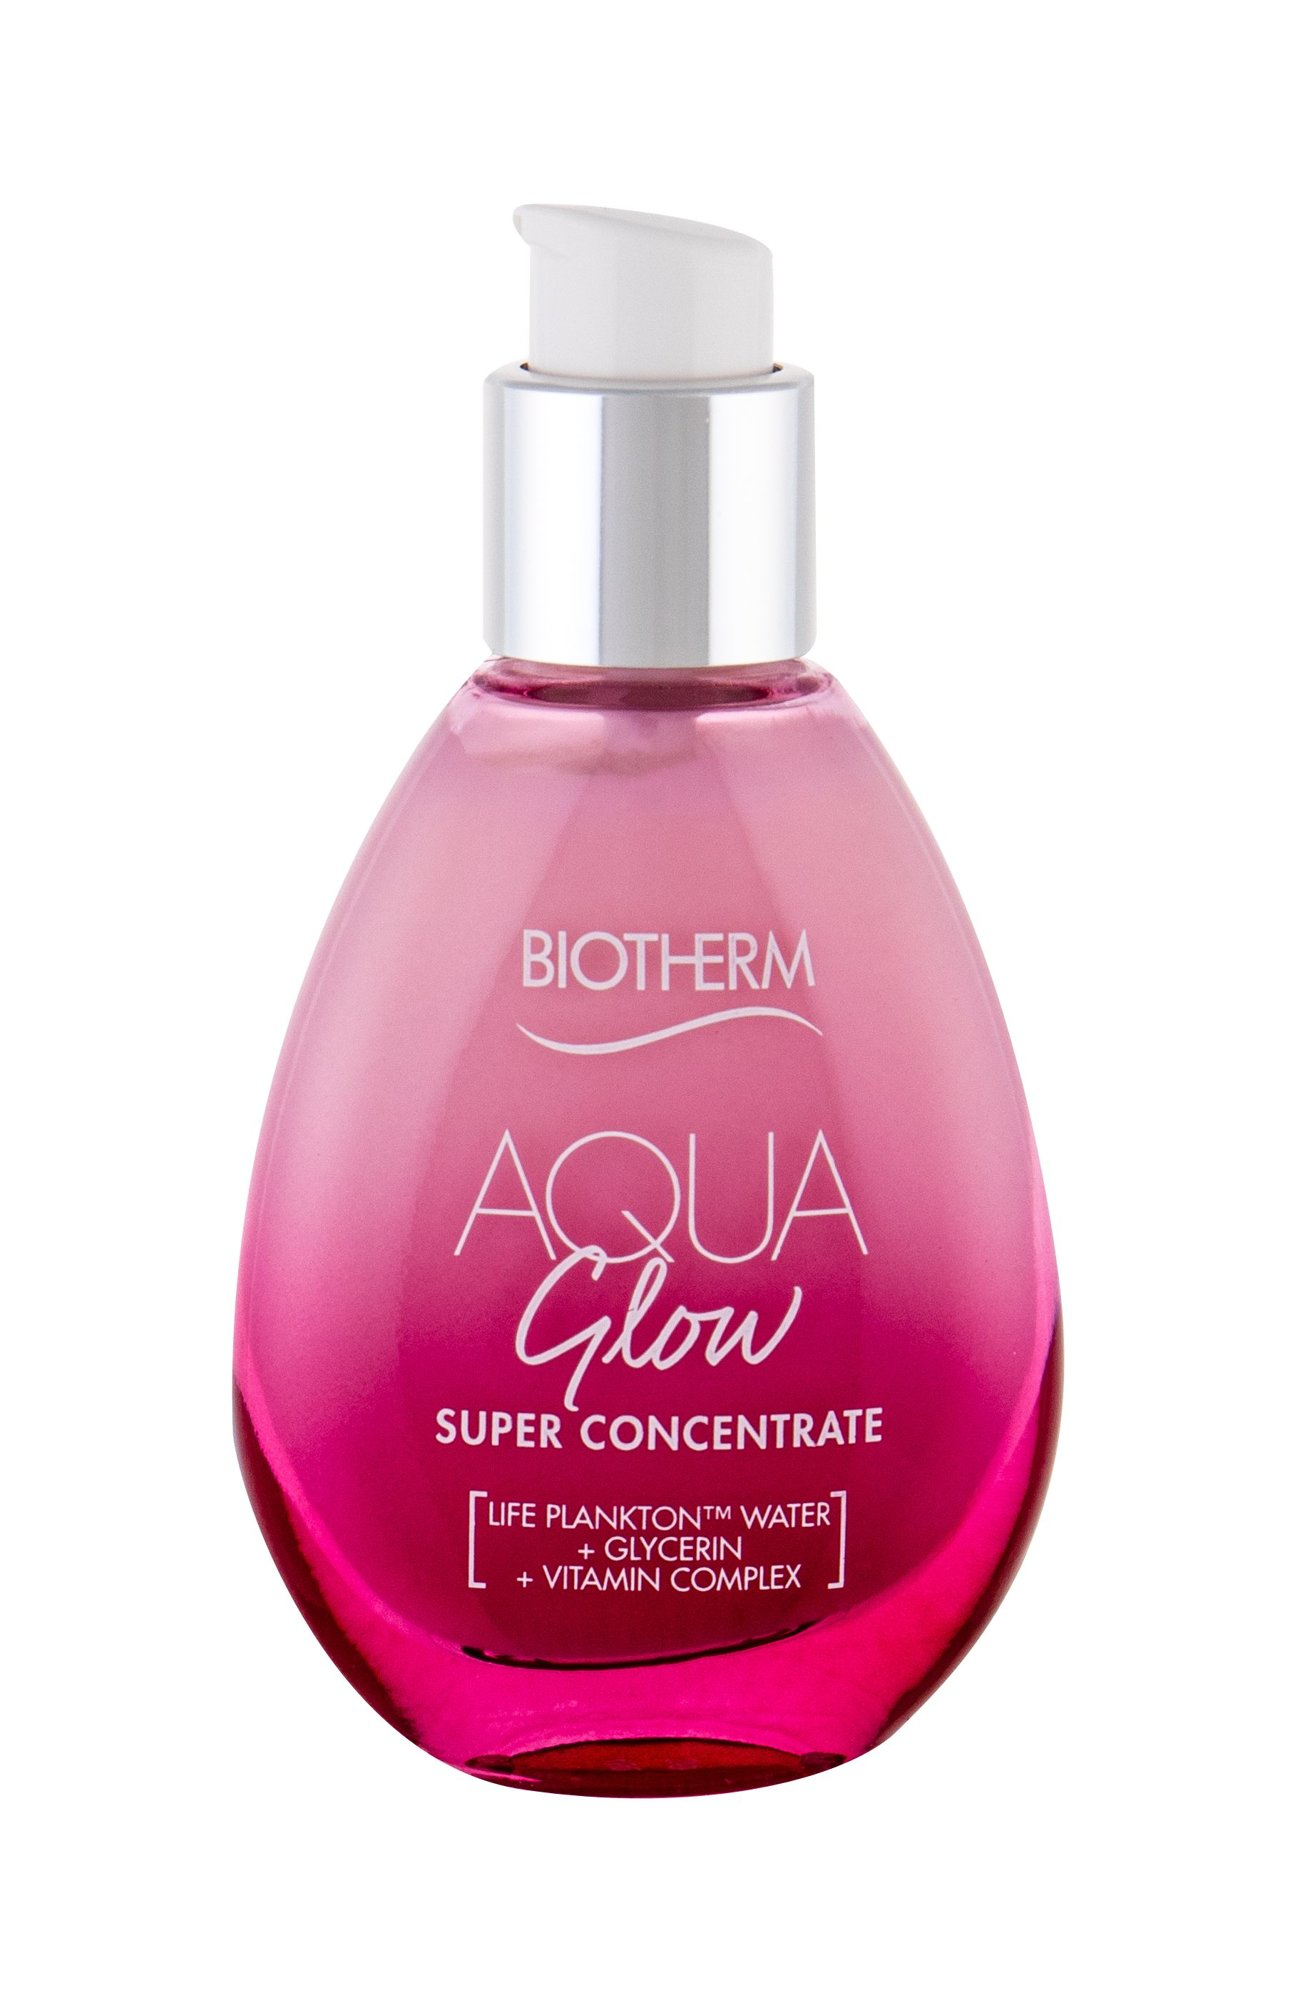 Biotherm Aqua Facial Gel 50ml